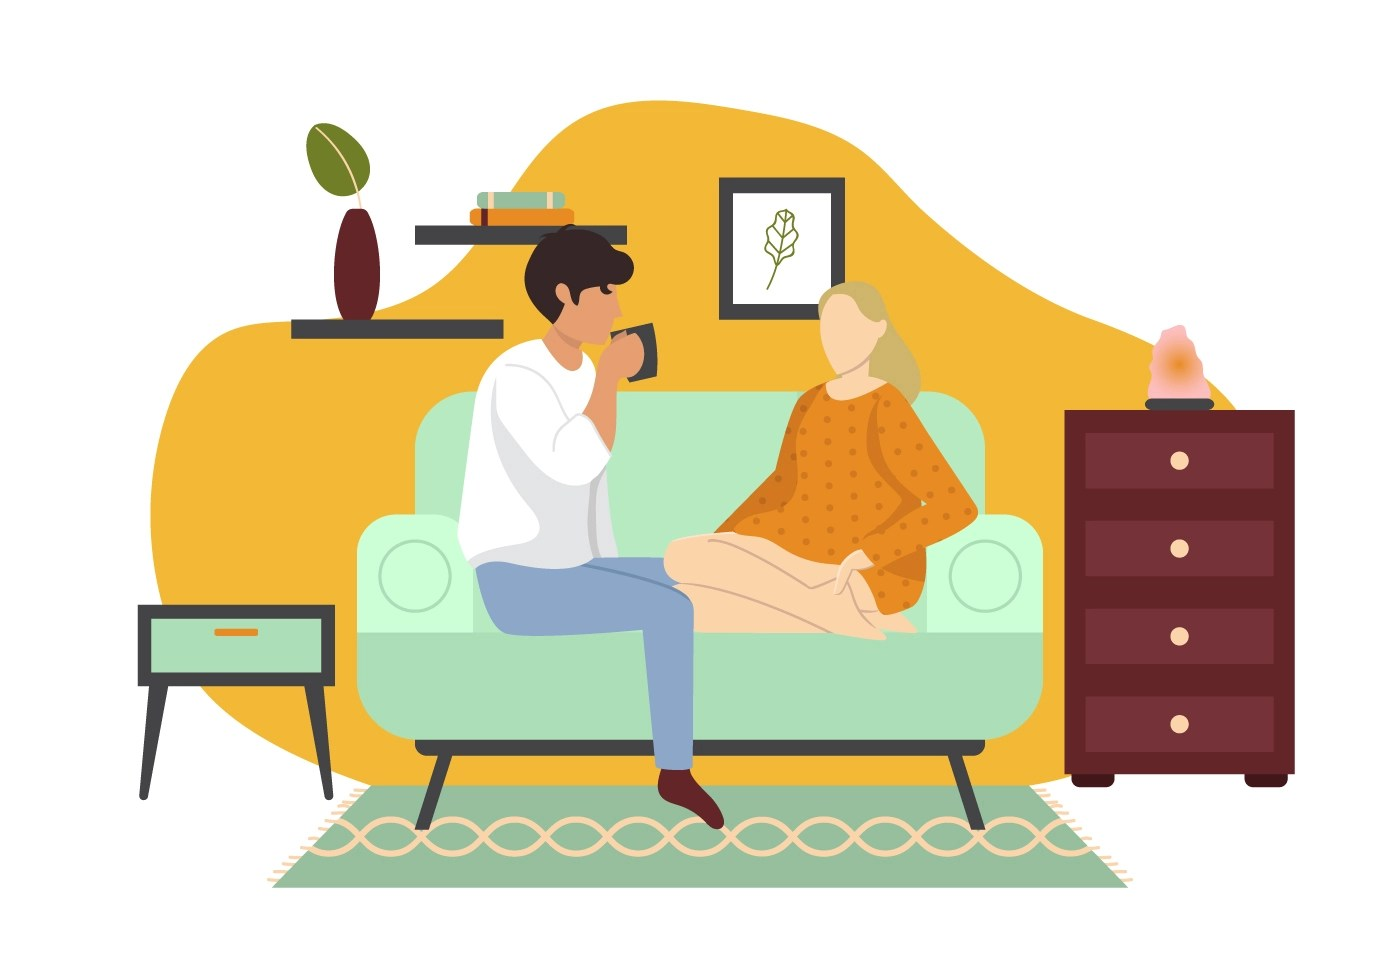 Sofa Vector Free Couple Sitting On Sofa Download Free Vector Art Stock Graphics